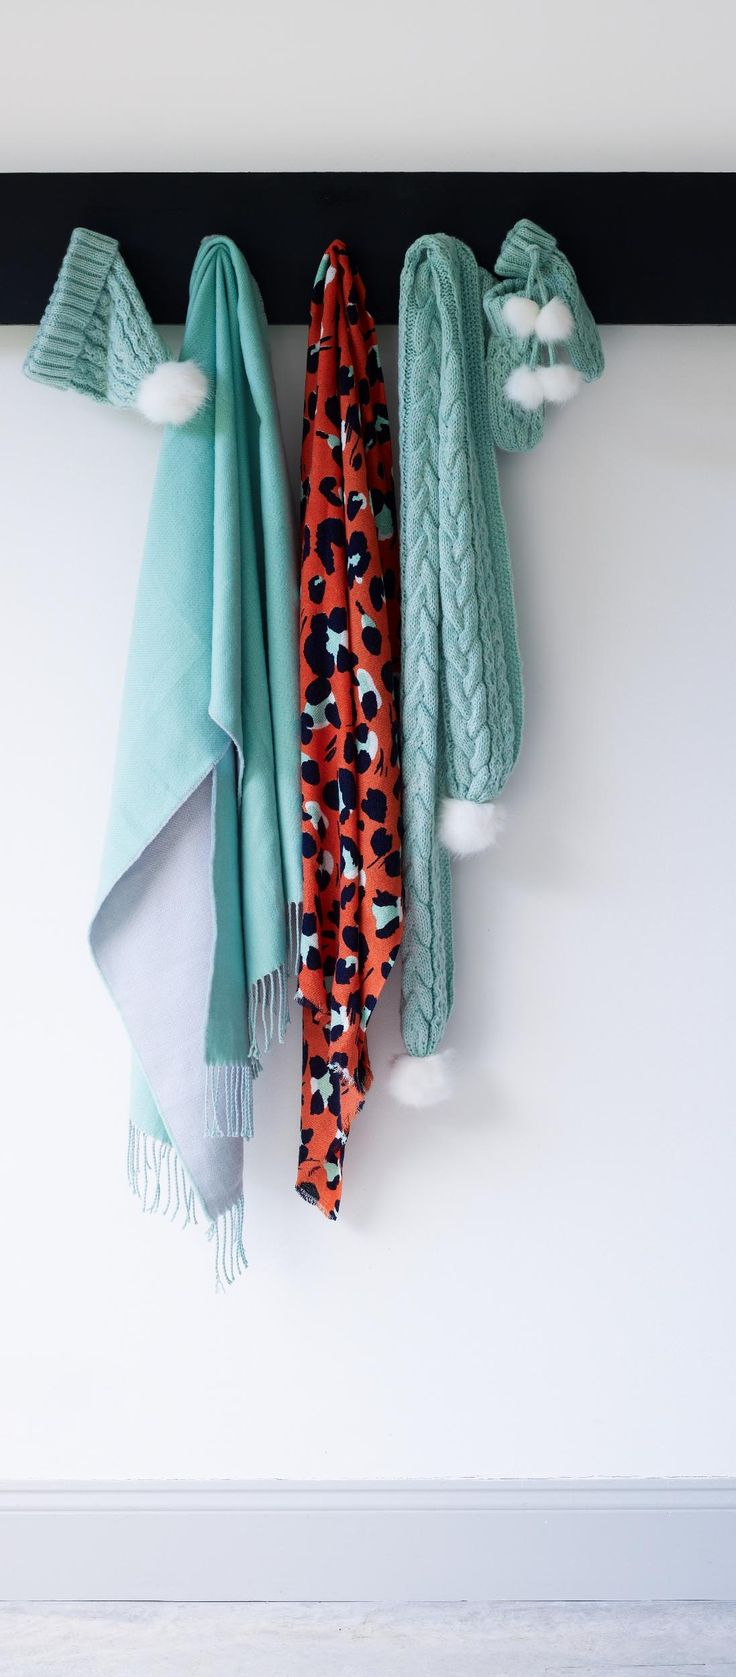 Refresh a monochrome look with our Mint Knitted Pom Pom Scarf. Featuring a chunky mint cable knit and white faux fur pom poms on the end.